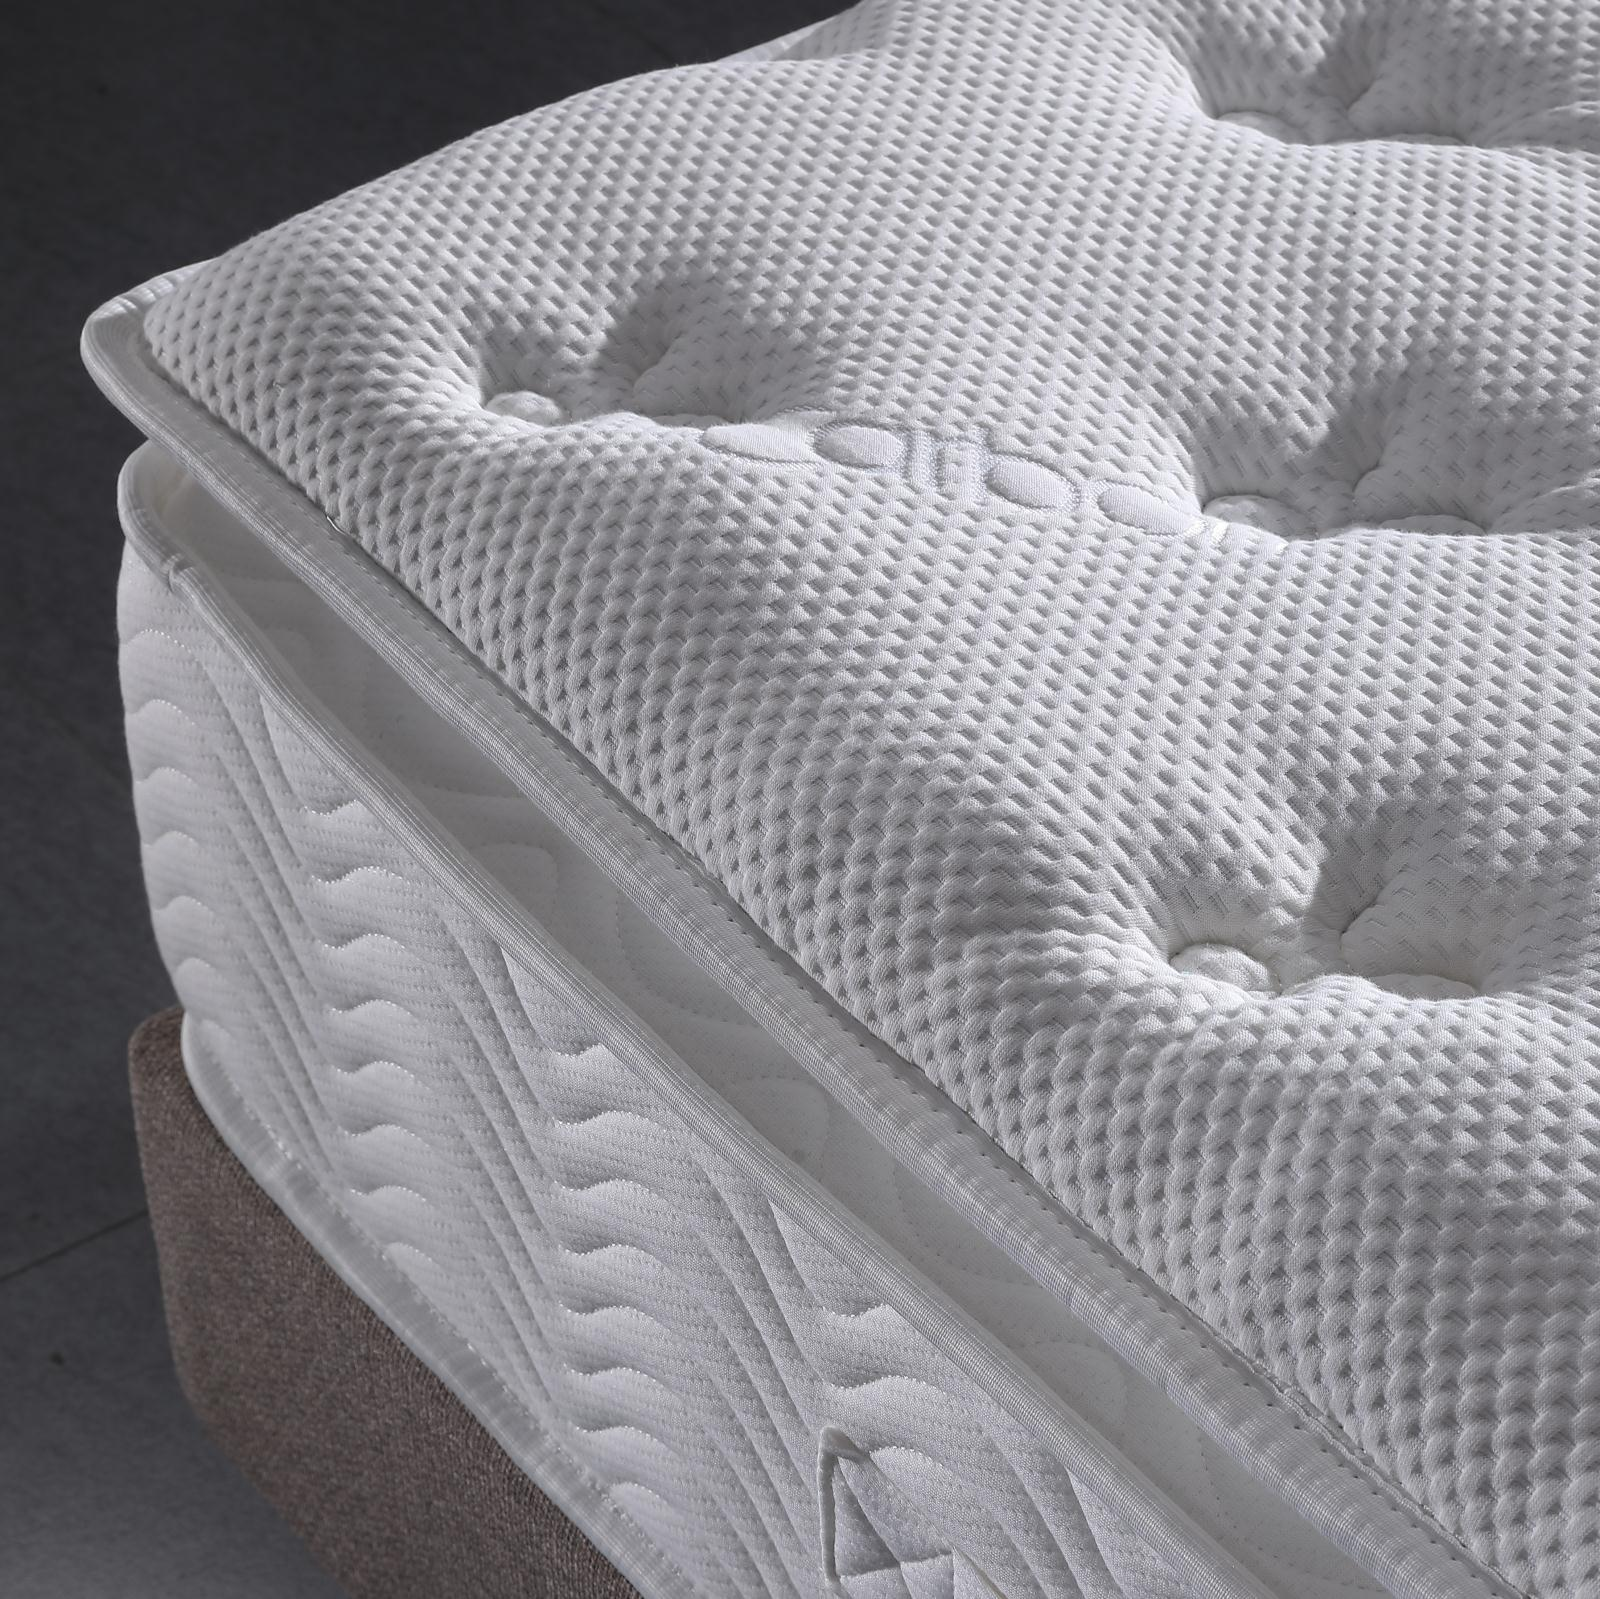 JLH-hotel mattress suppliers ,hotel collection mattress | JLH